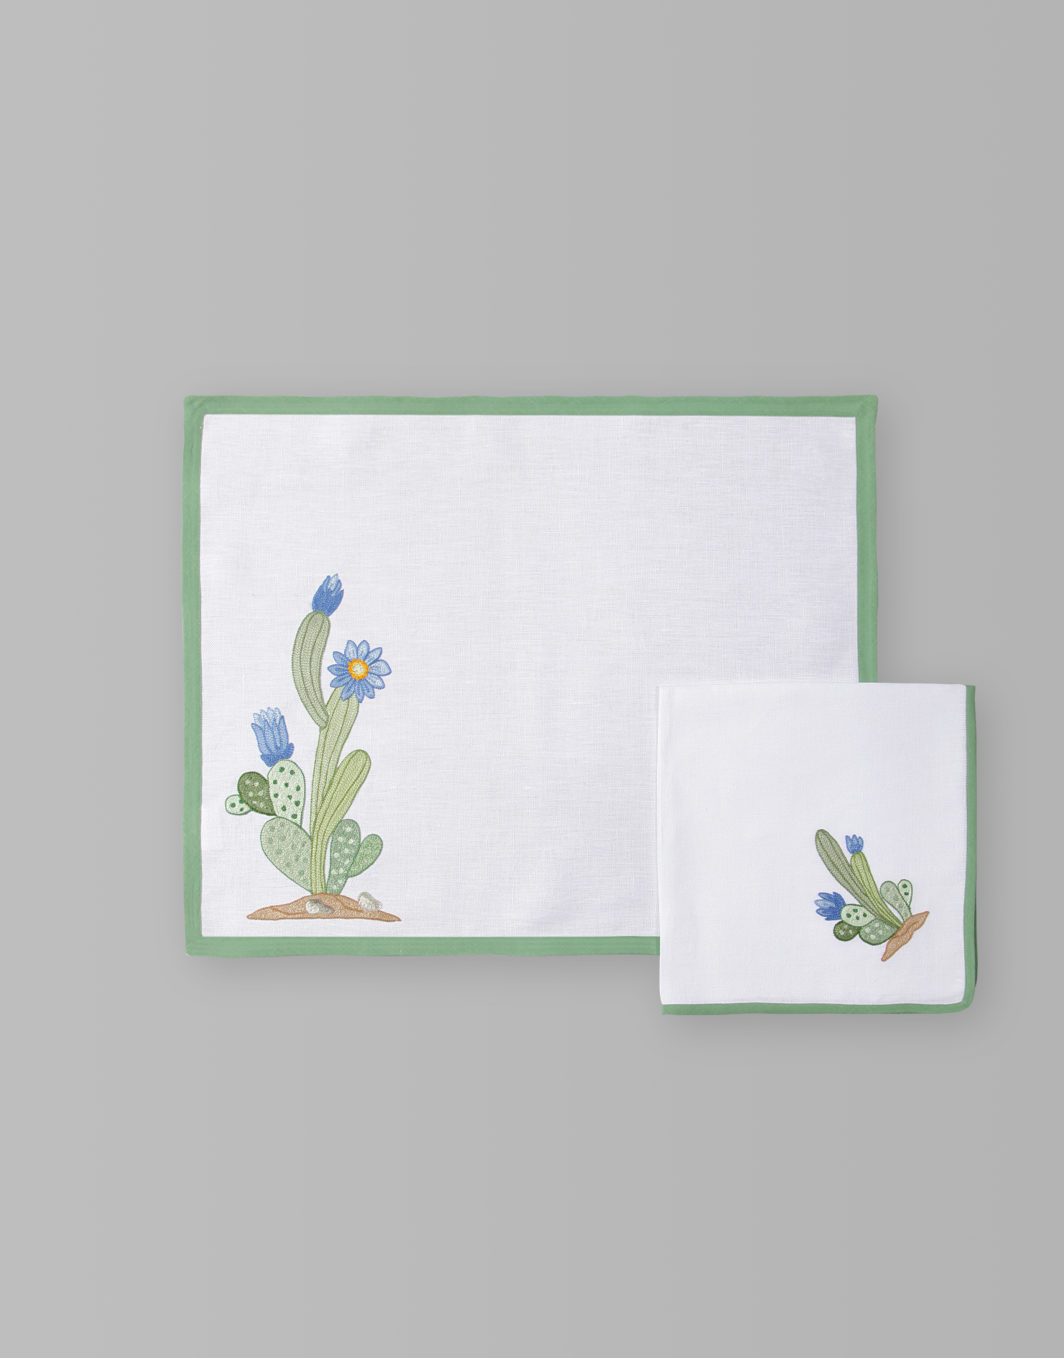 FLOWERED CACTUS PLACEMAT SET OF 2